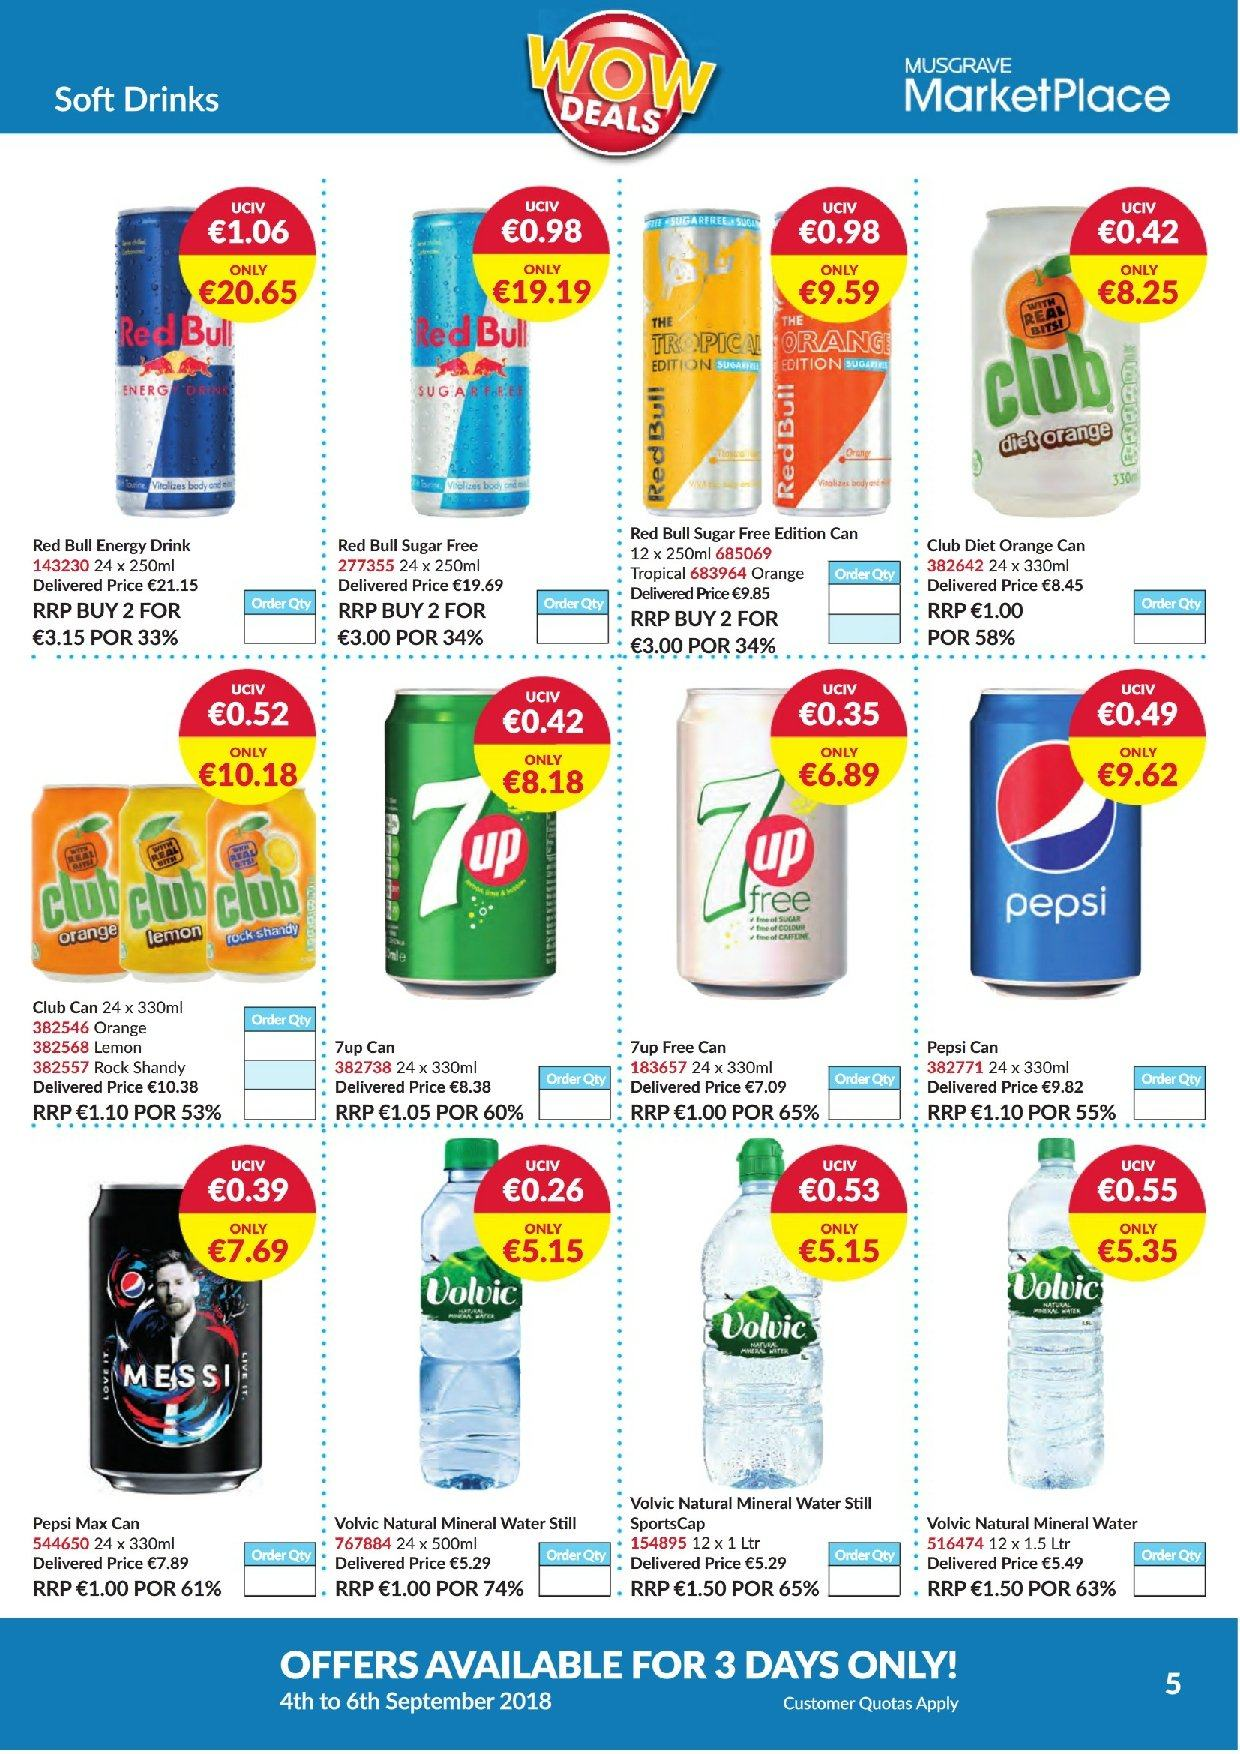 MUSGRAVE Market Place offer  - 4.9.2018 - 6.9.2018 - Sales products - orange, Pepsi, energy drink, Pepsi Max, mineral water, water. Page 5.